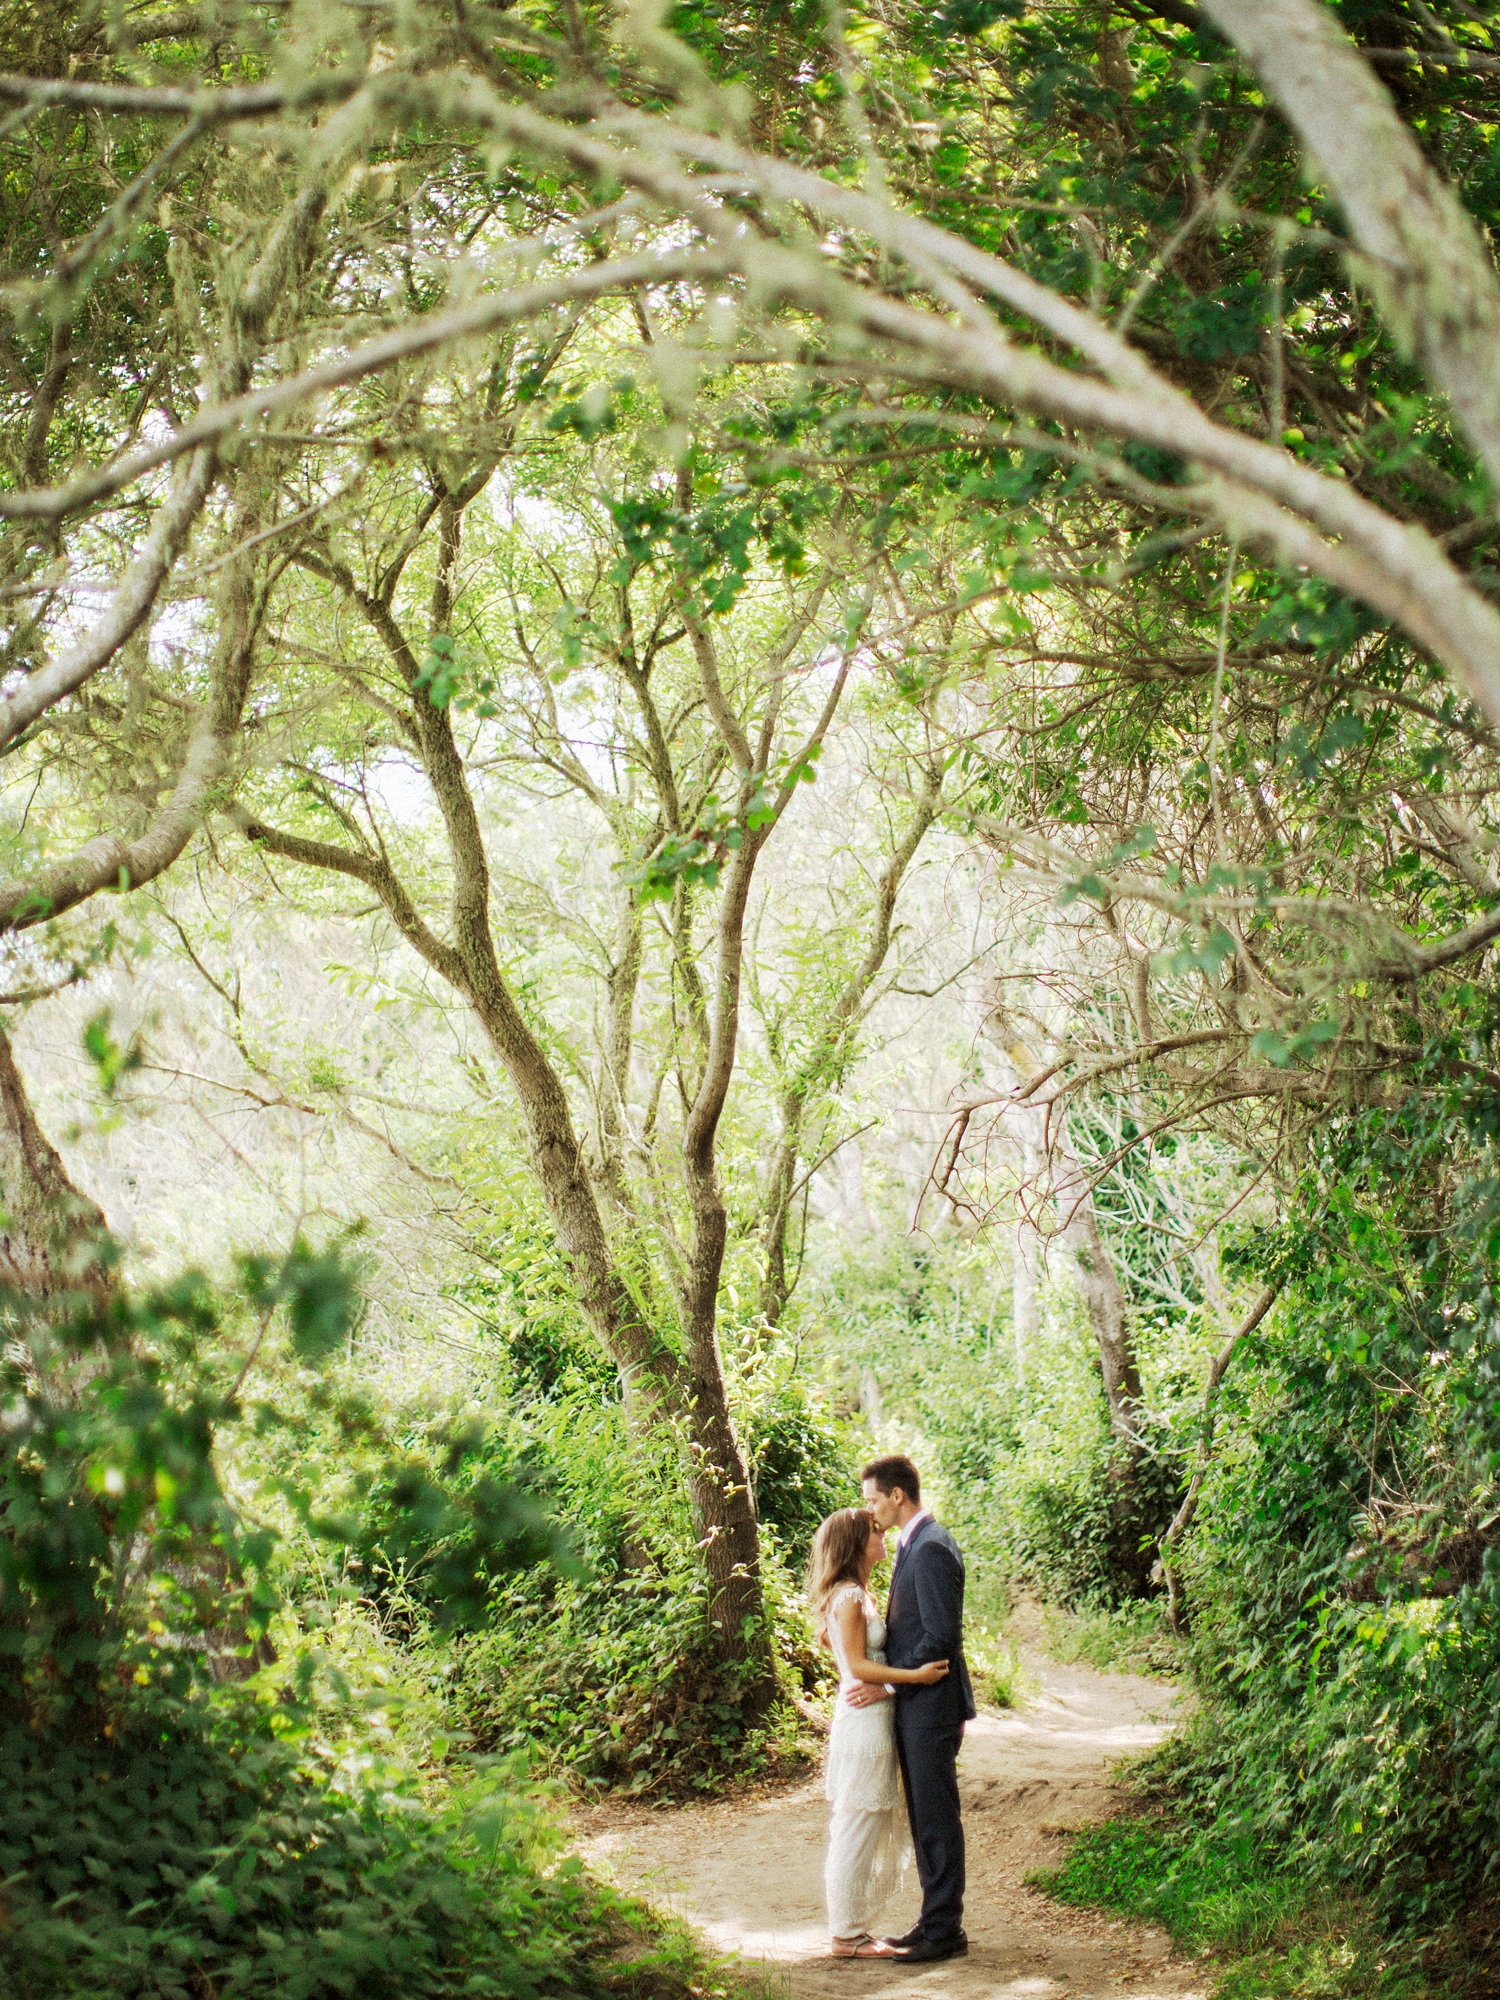 keblog-big-sur-wedding-ryan-flynn-photography-0045.JPG